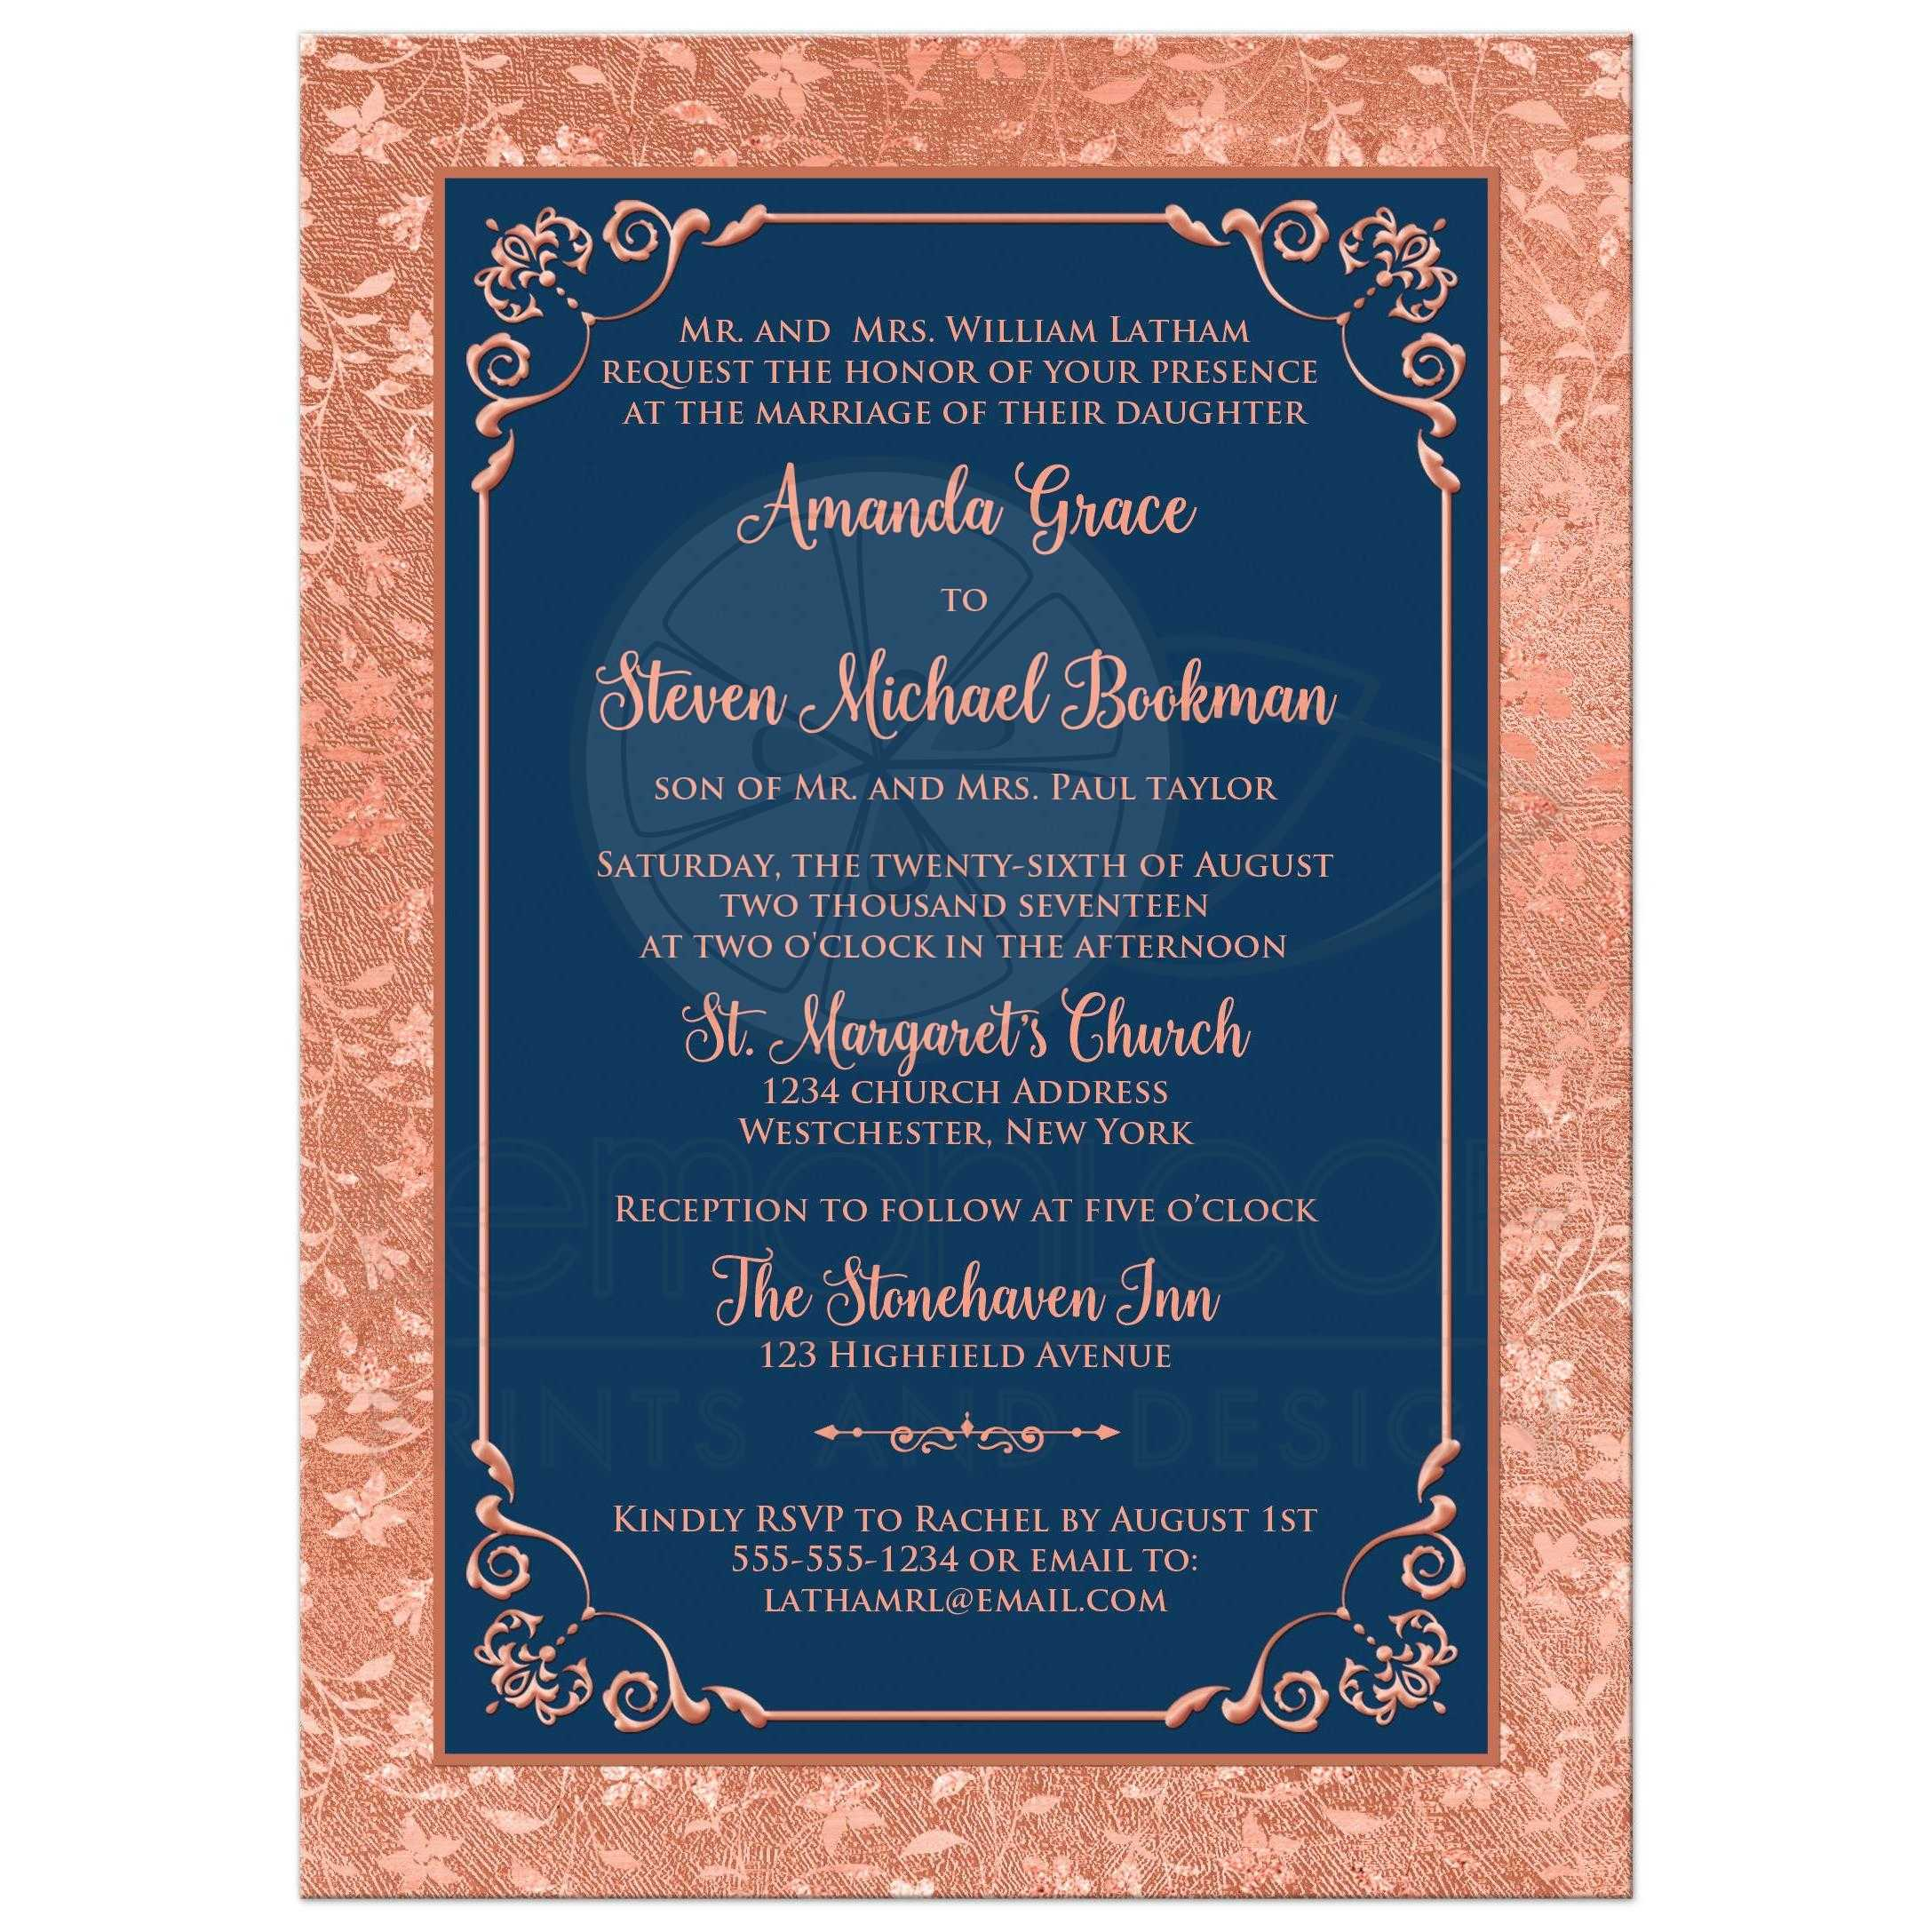 Navy Blue And Orange Copper Foil Wedding Invitation With Flowers, Vines,  And Decorative Scroll ...